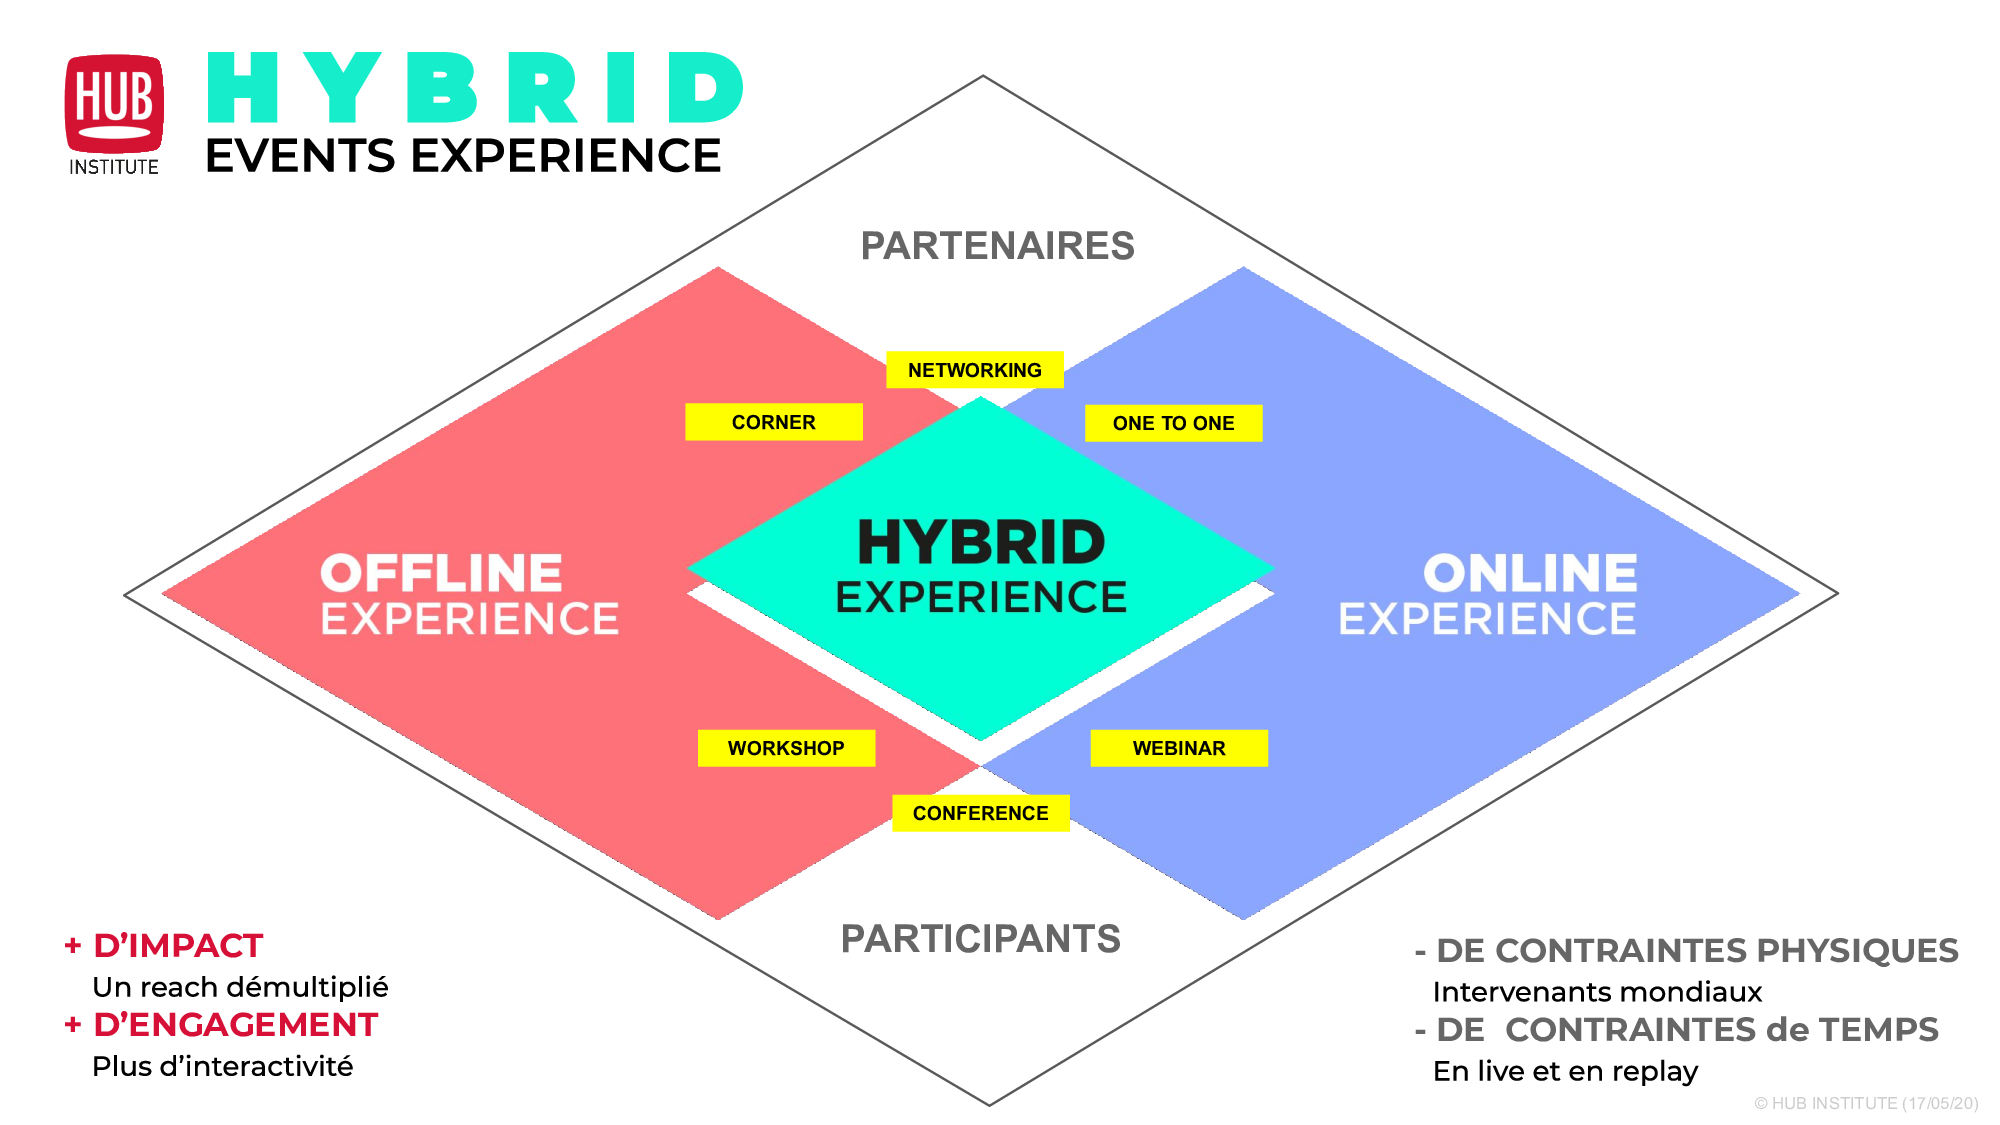 Hybrid Events by HUB Institute